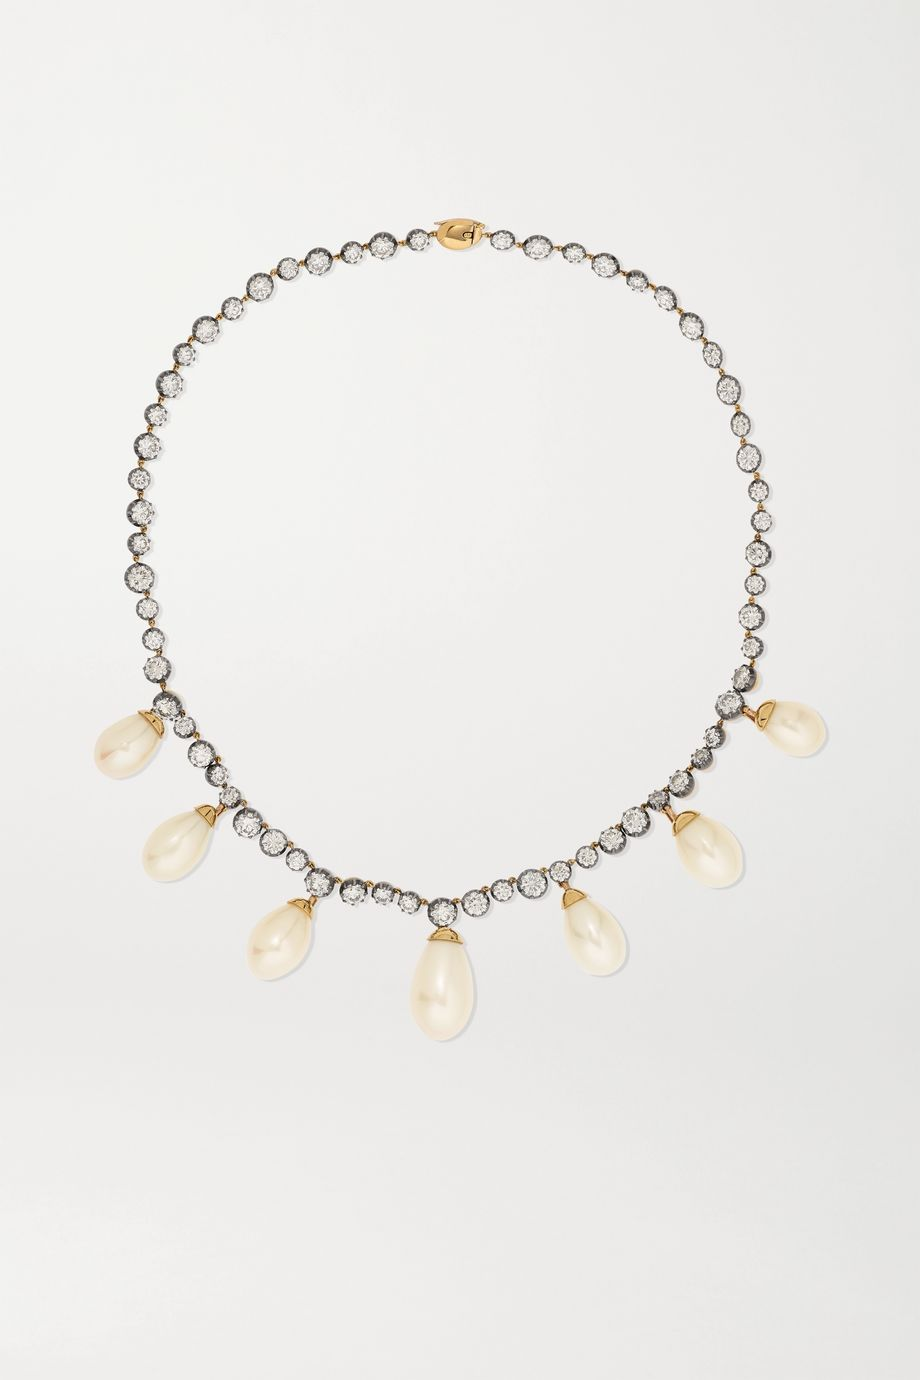 Jessica McCormack + Emilia Wickstead 18-karat yellow and blackened white gold, pearl and diamond necklace